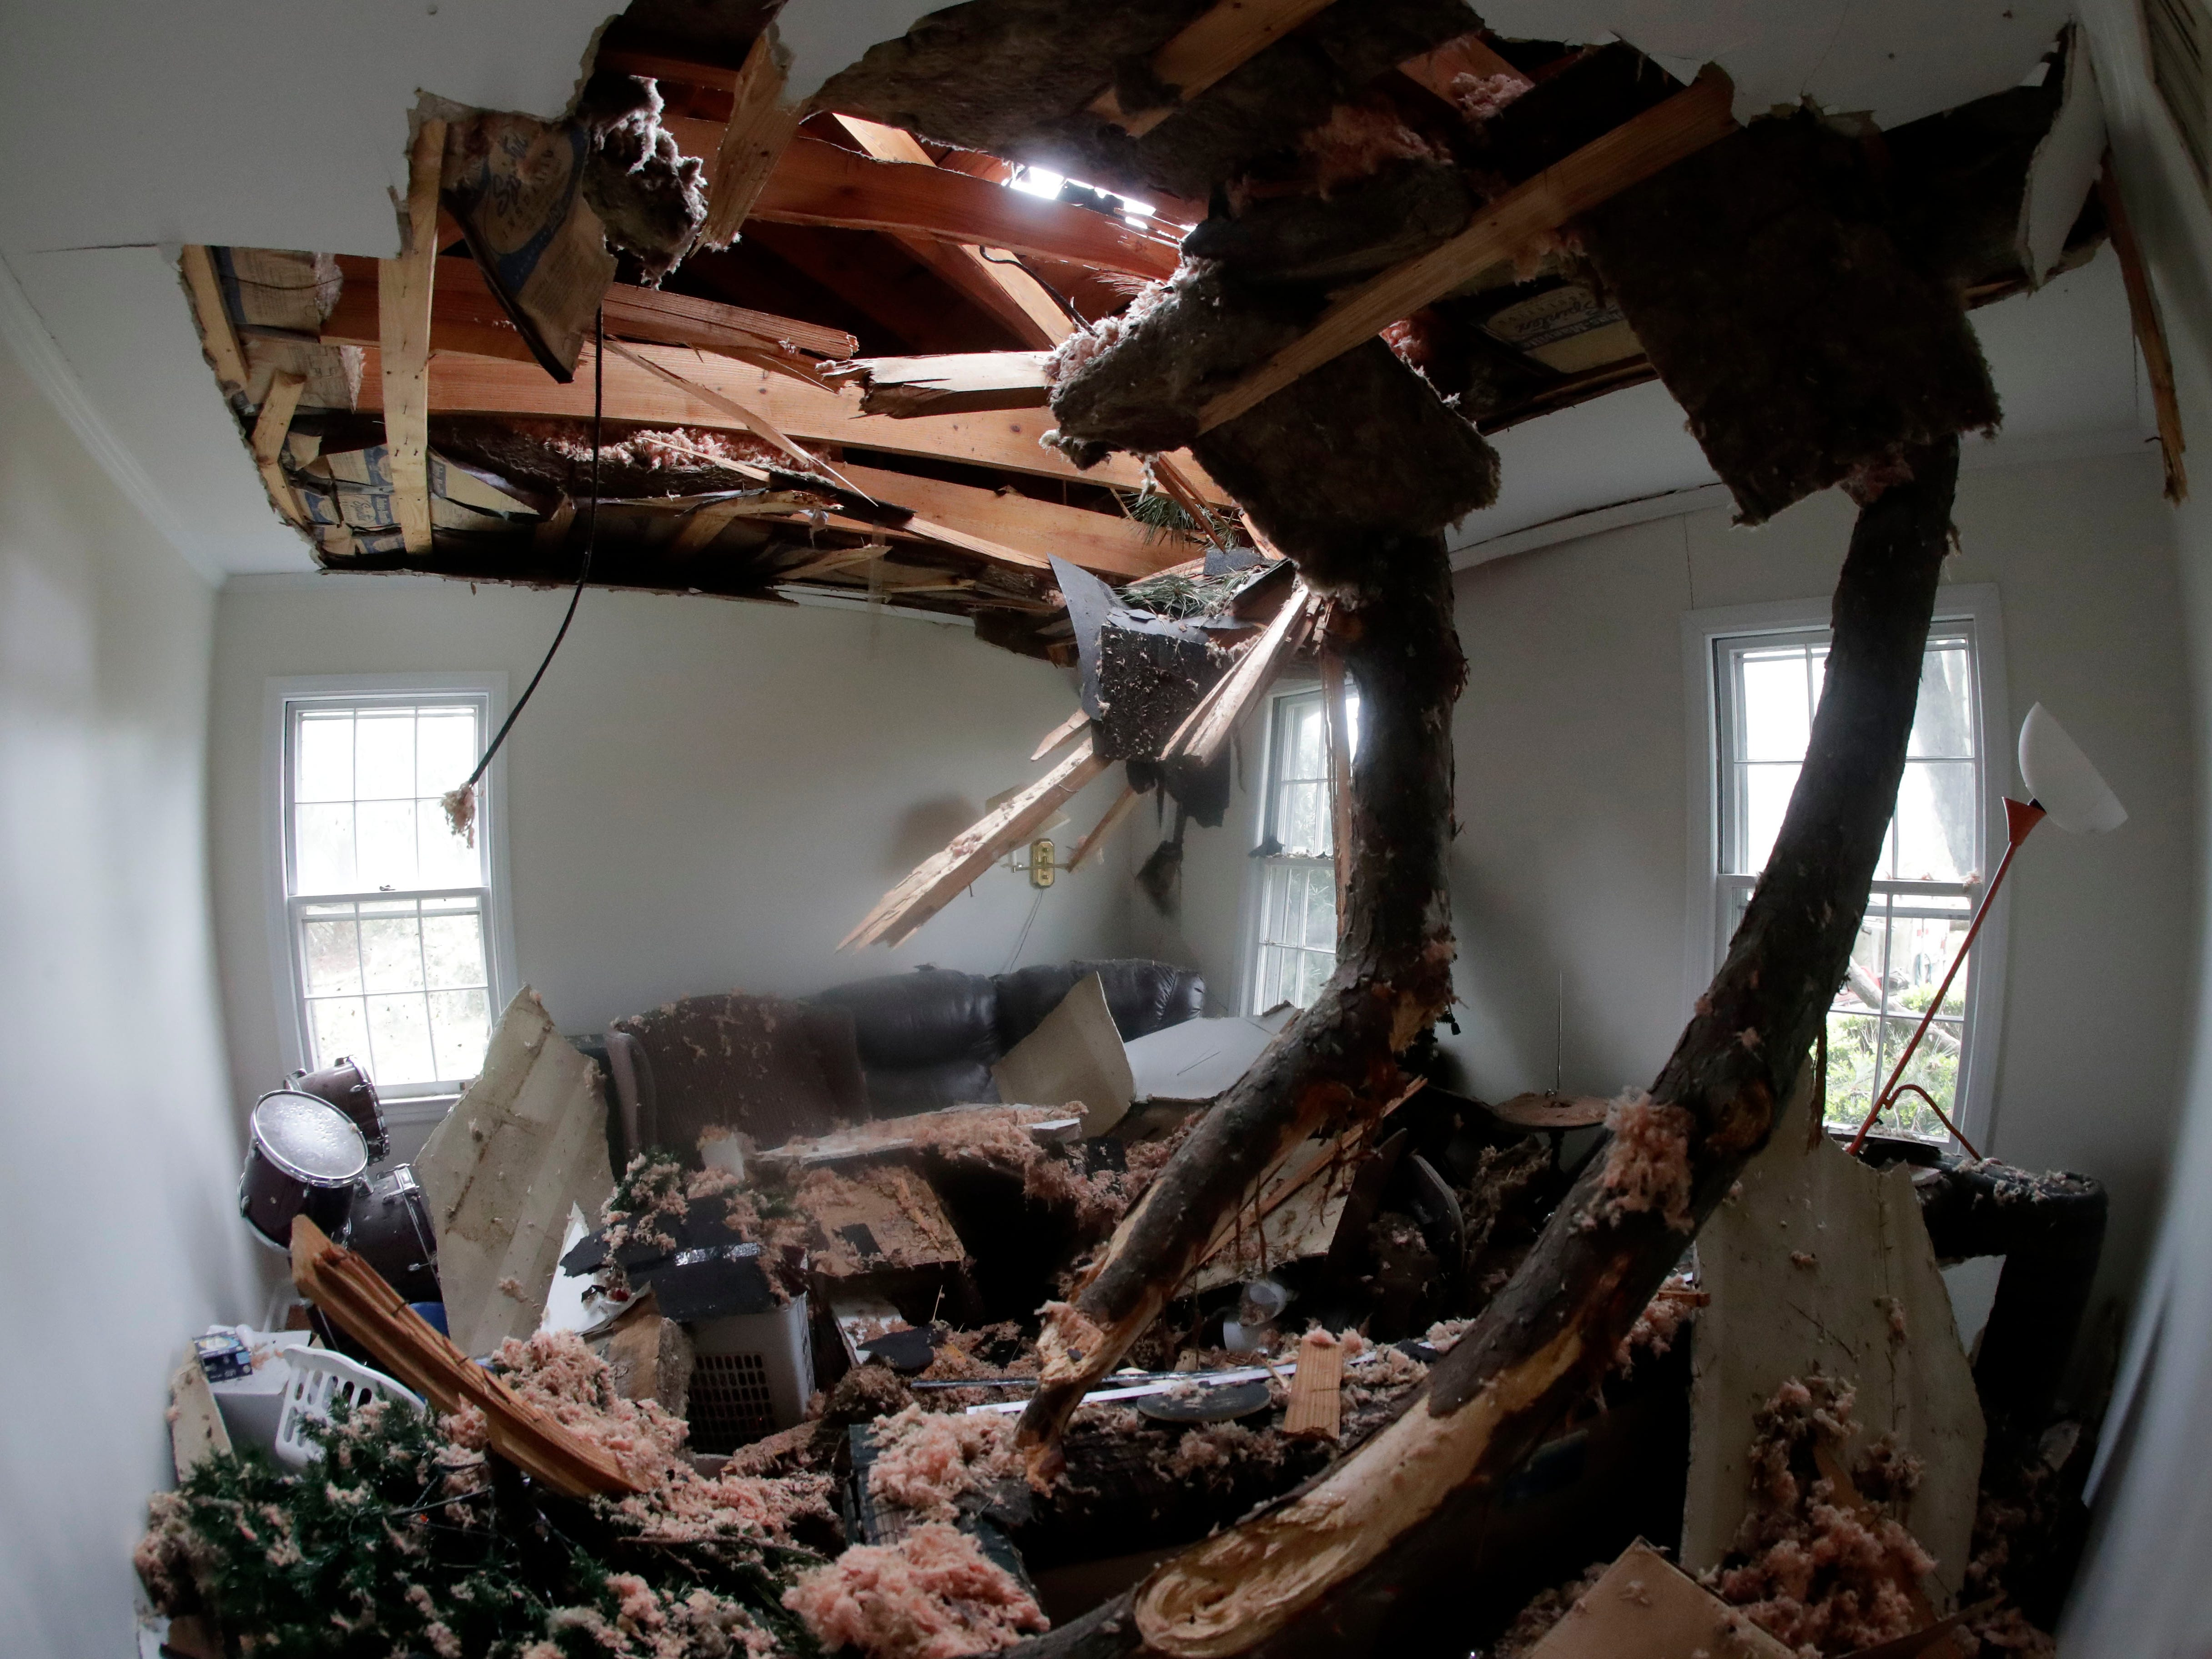 The youth house owned by the First United Methodist Church in Cairo, Ga., had a tree fall through the roof when a tornado hit on March 3, 2019.